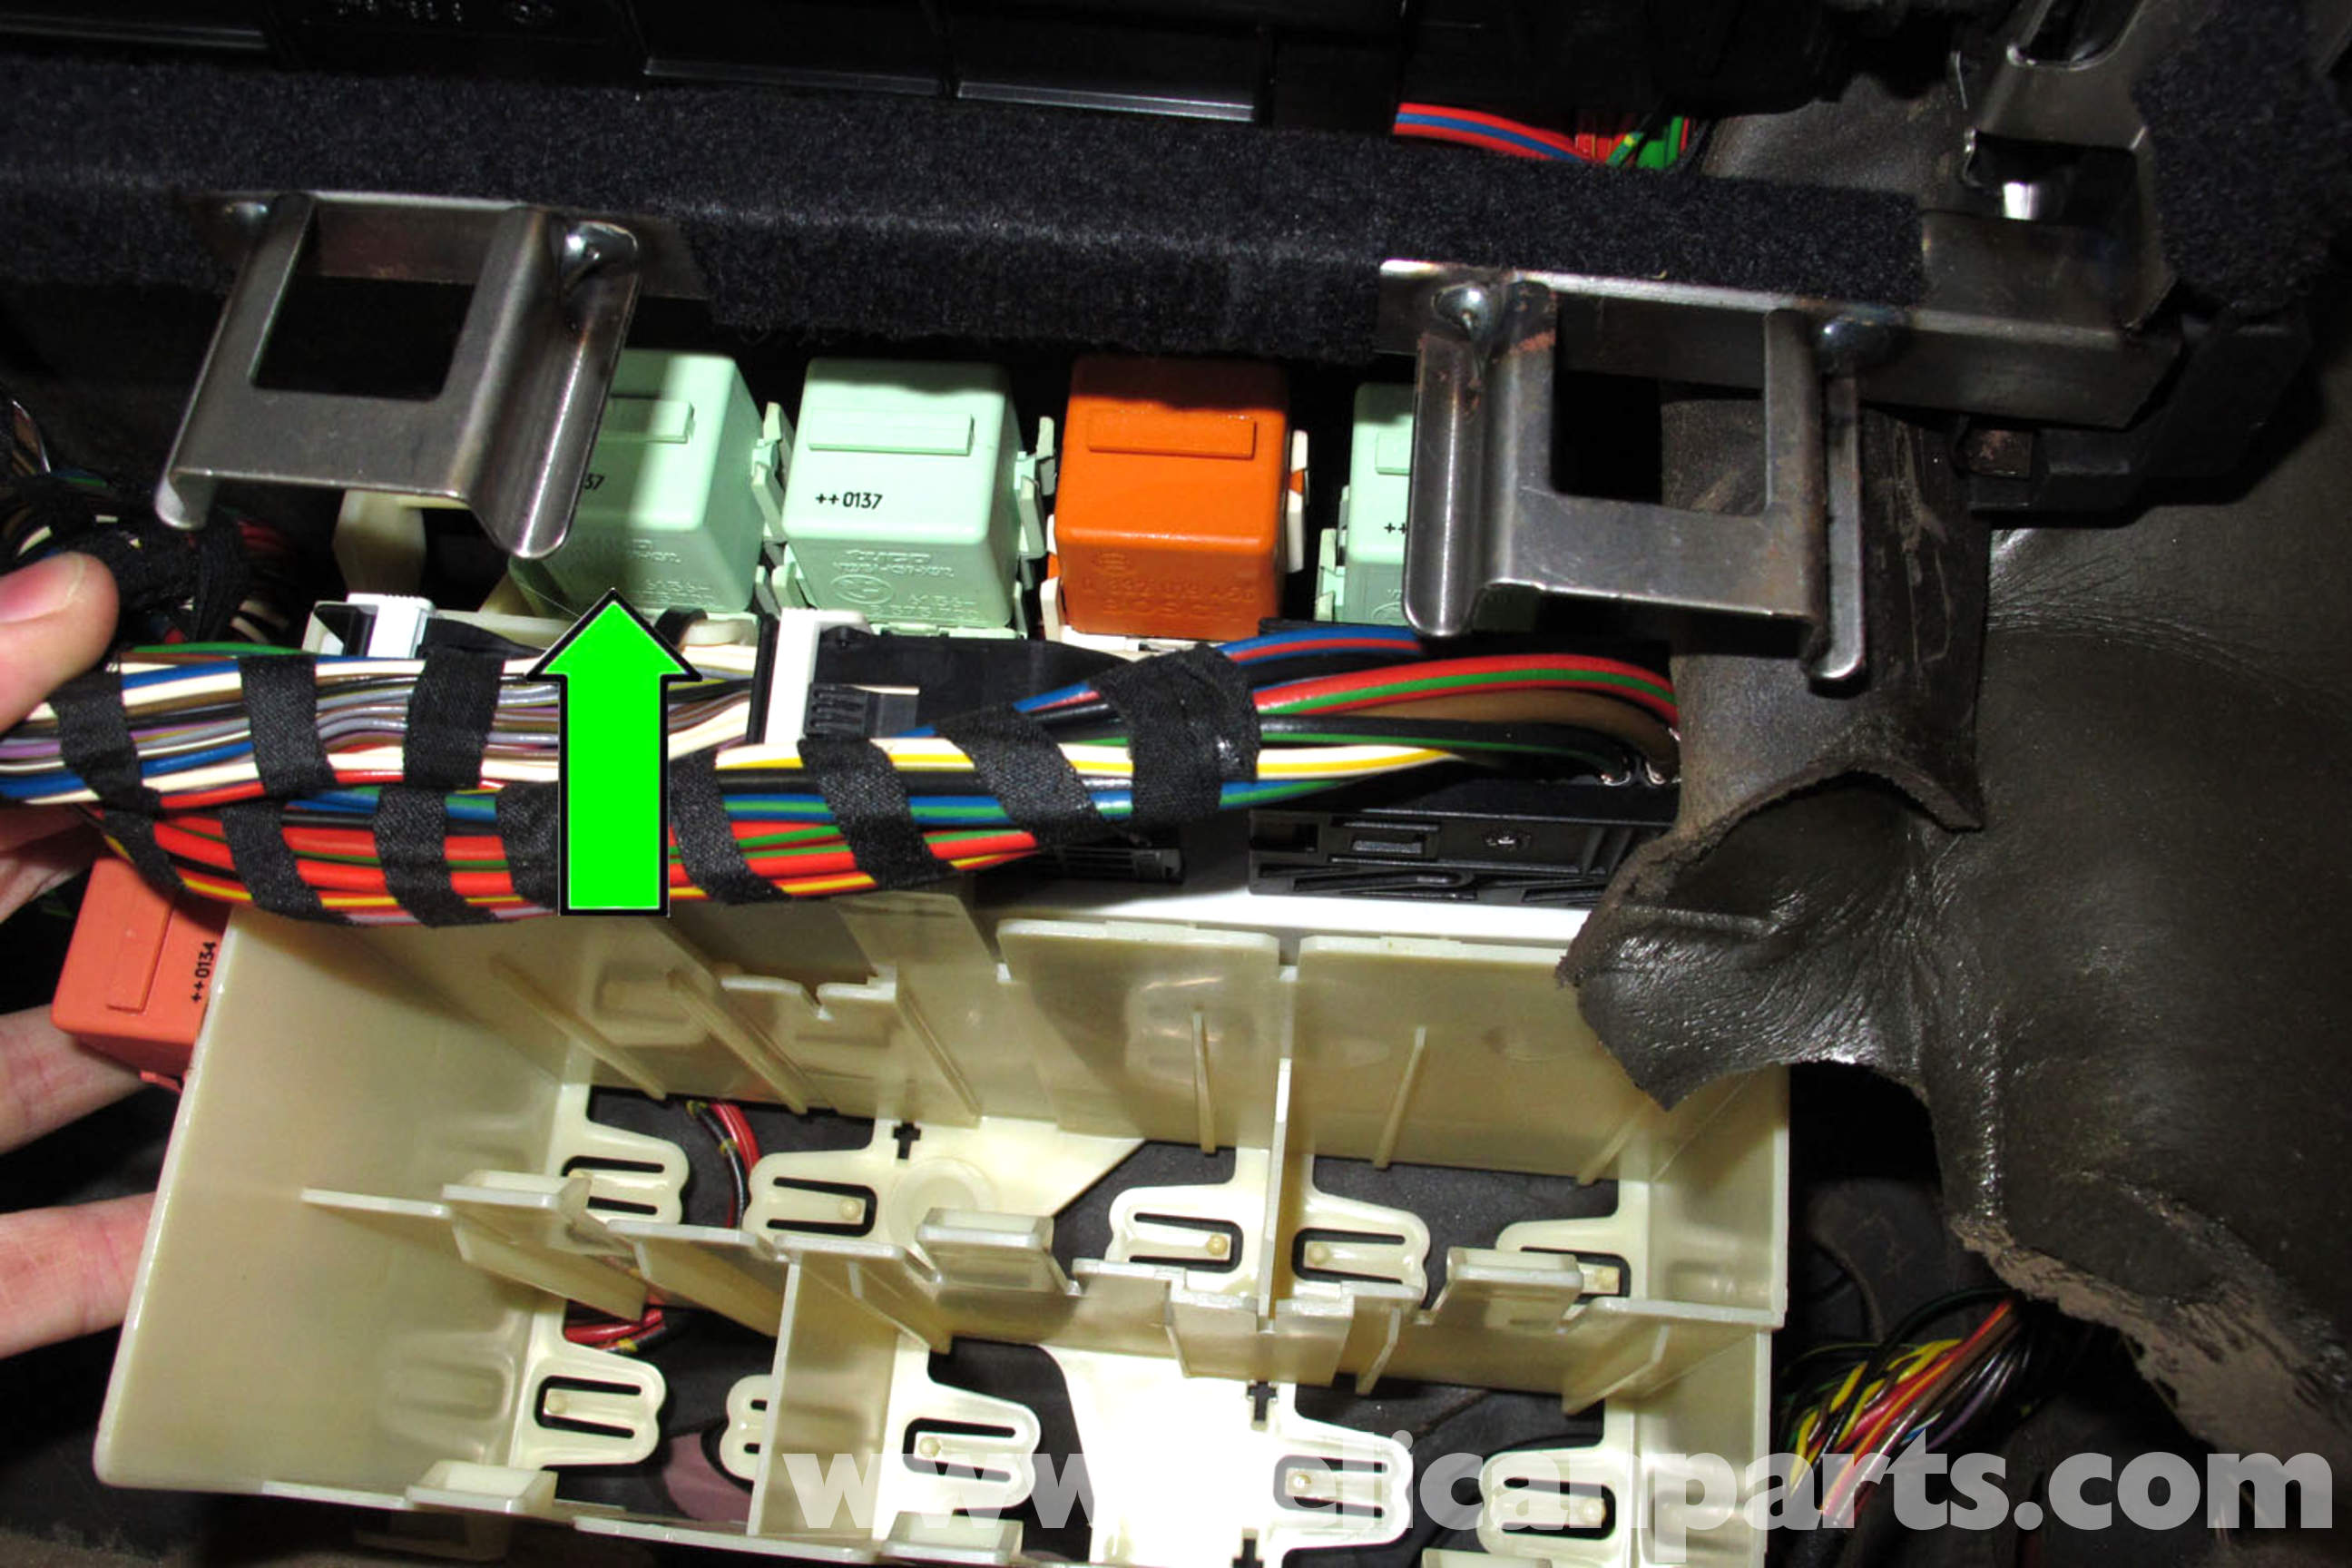 2000 Bmw 540i Fuse Box Location Trusted Wiring Diagram E46 Ecu Relay V8